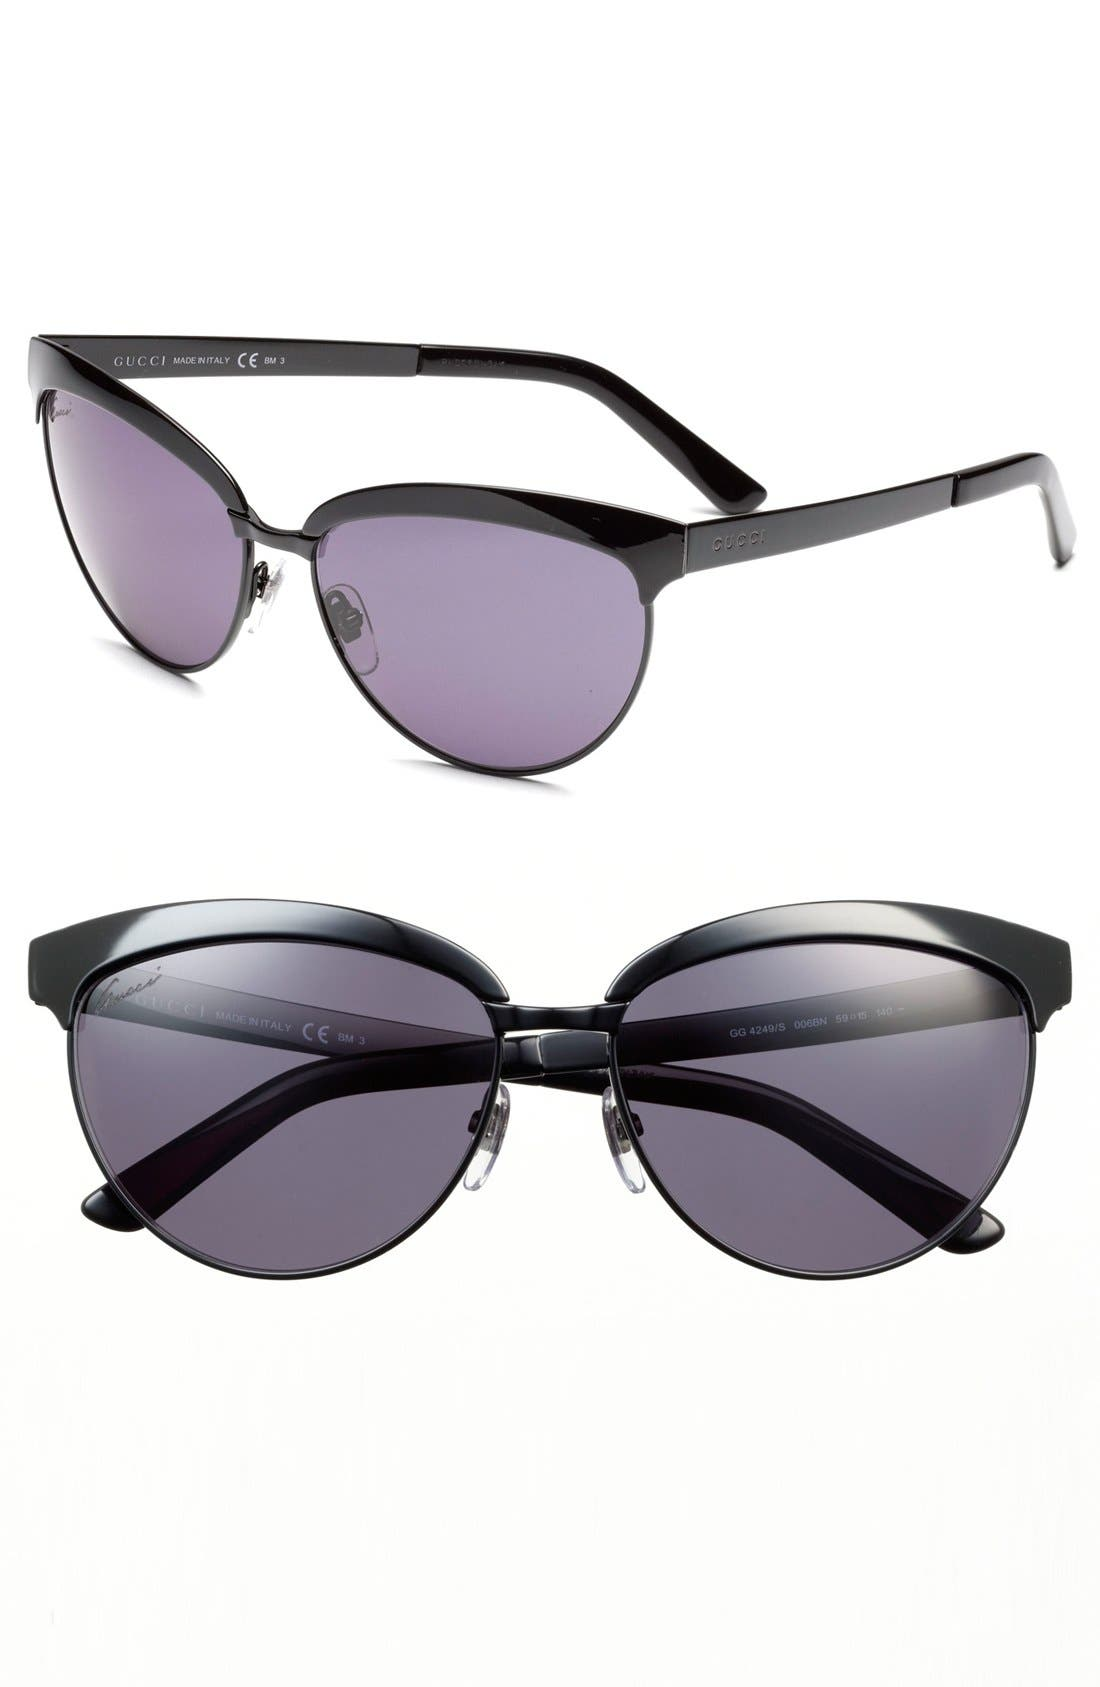 Main Image - Gucci 59mm Sunglasses